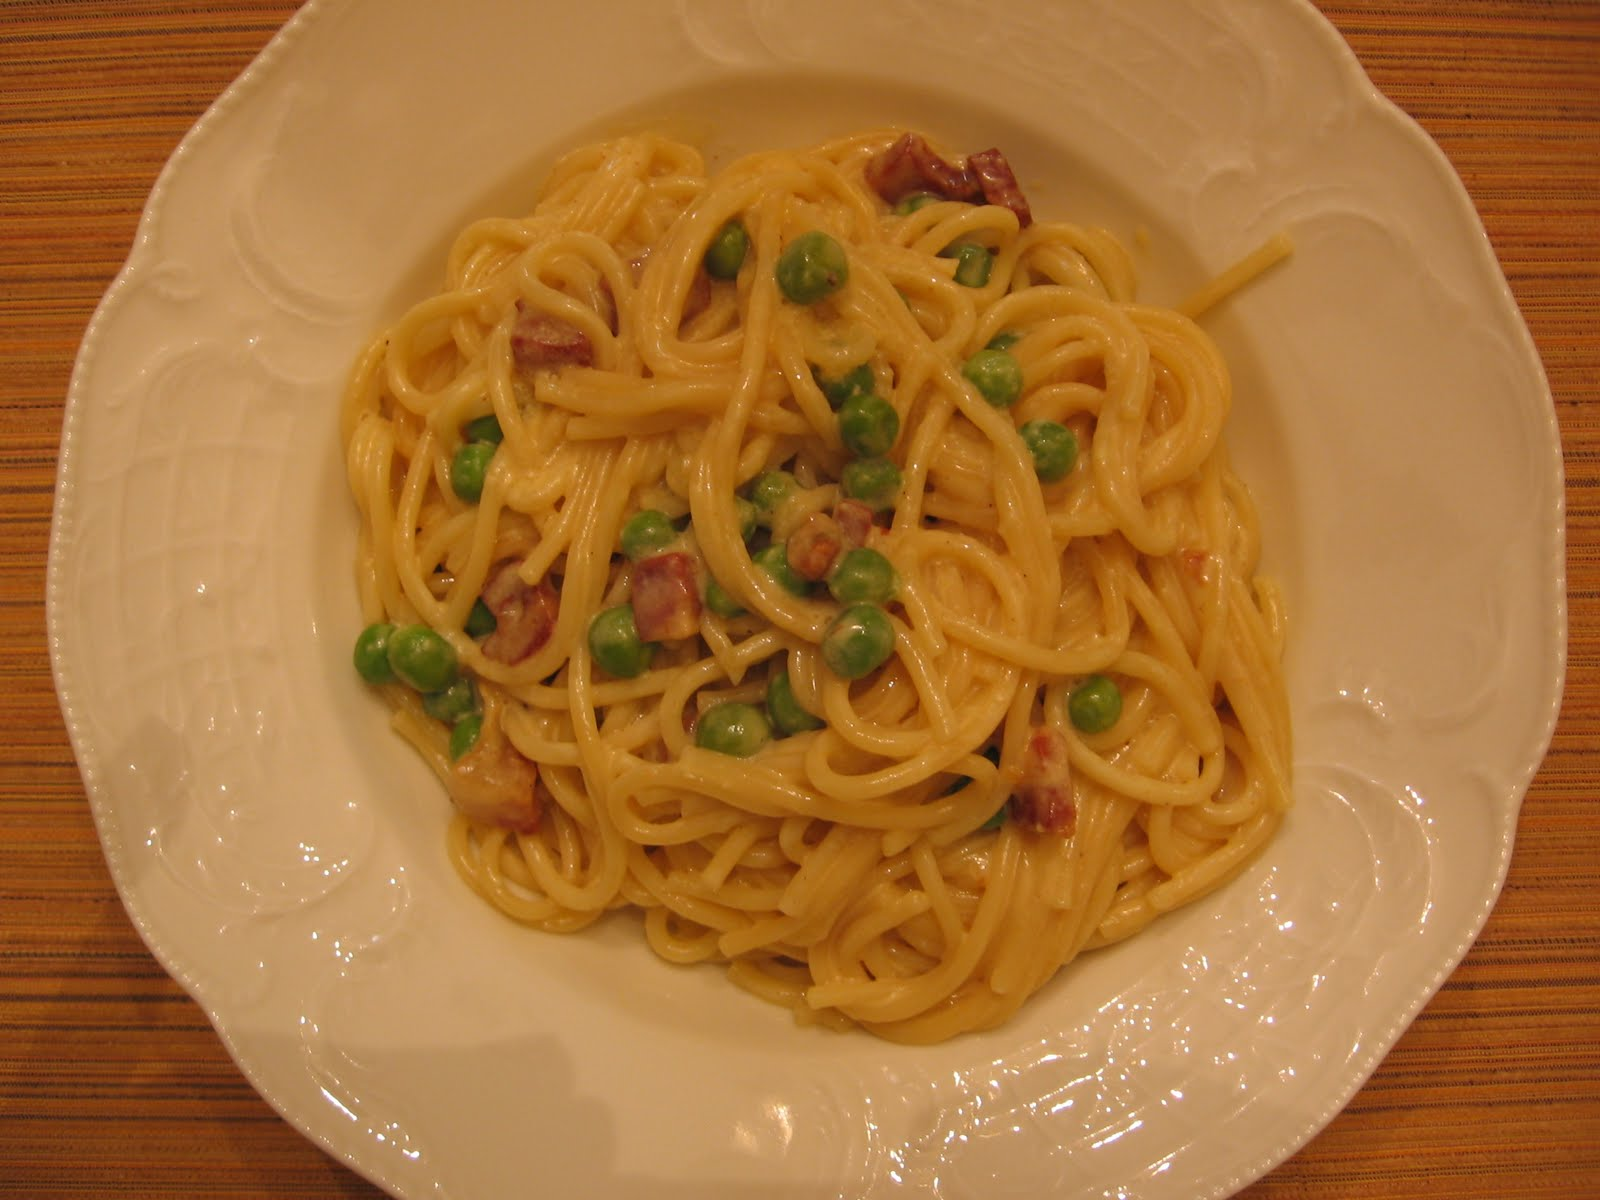 Recipe: Spaghetti Carbonara